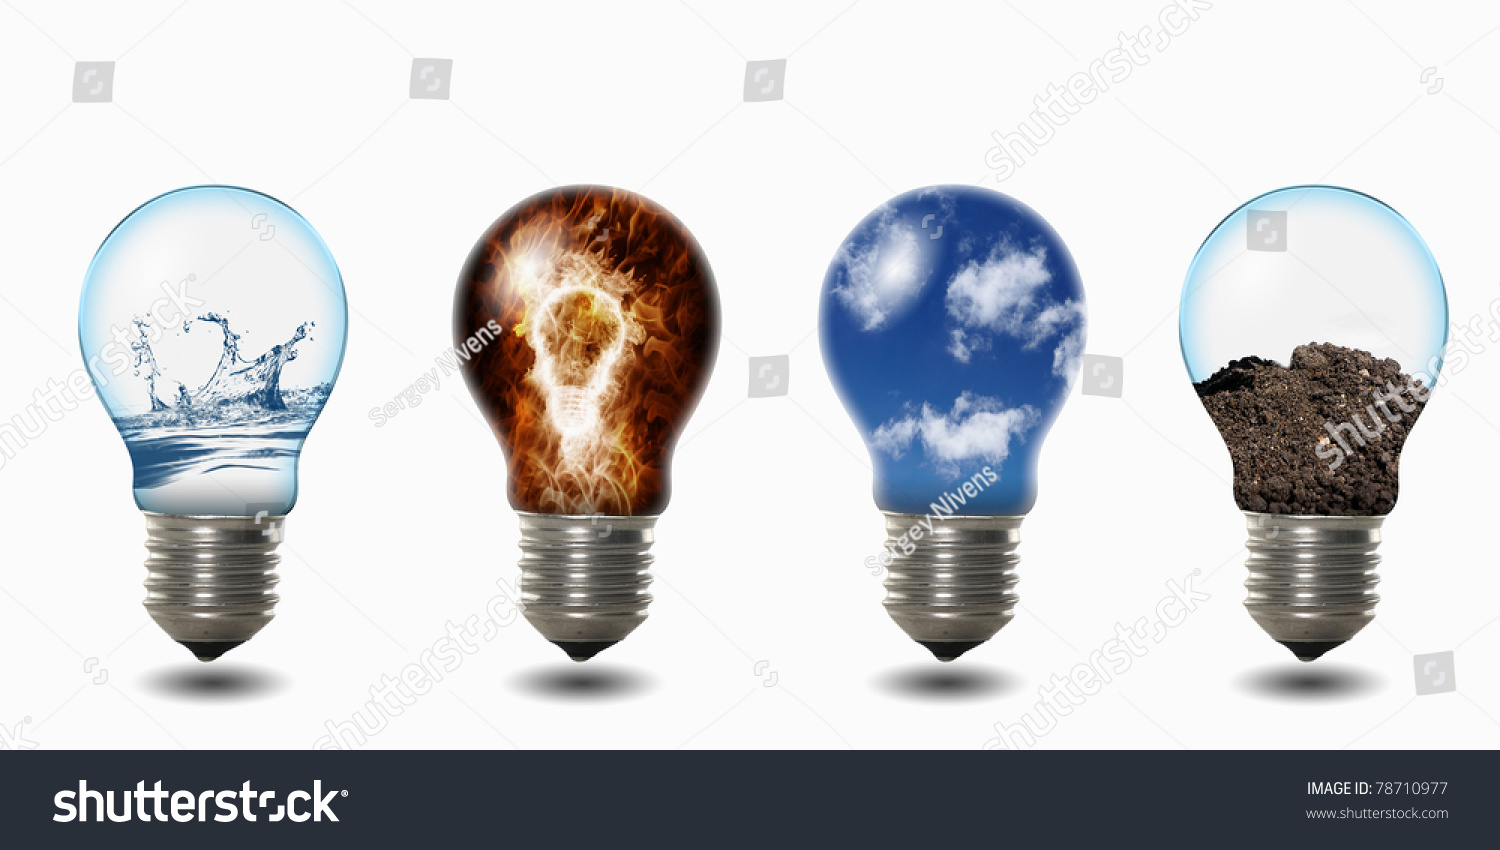 Fire Light Bulb: light bulb with four elements of fire, air, water and soil inside,Lighting